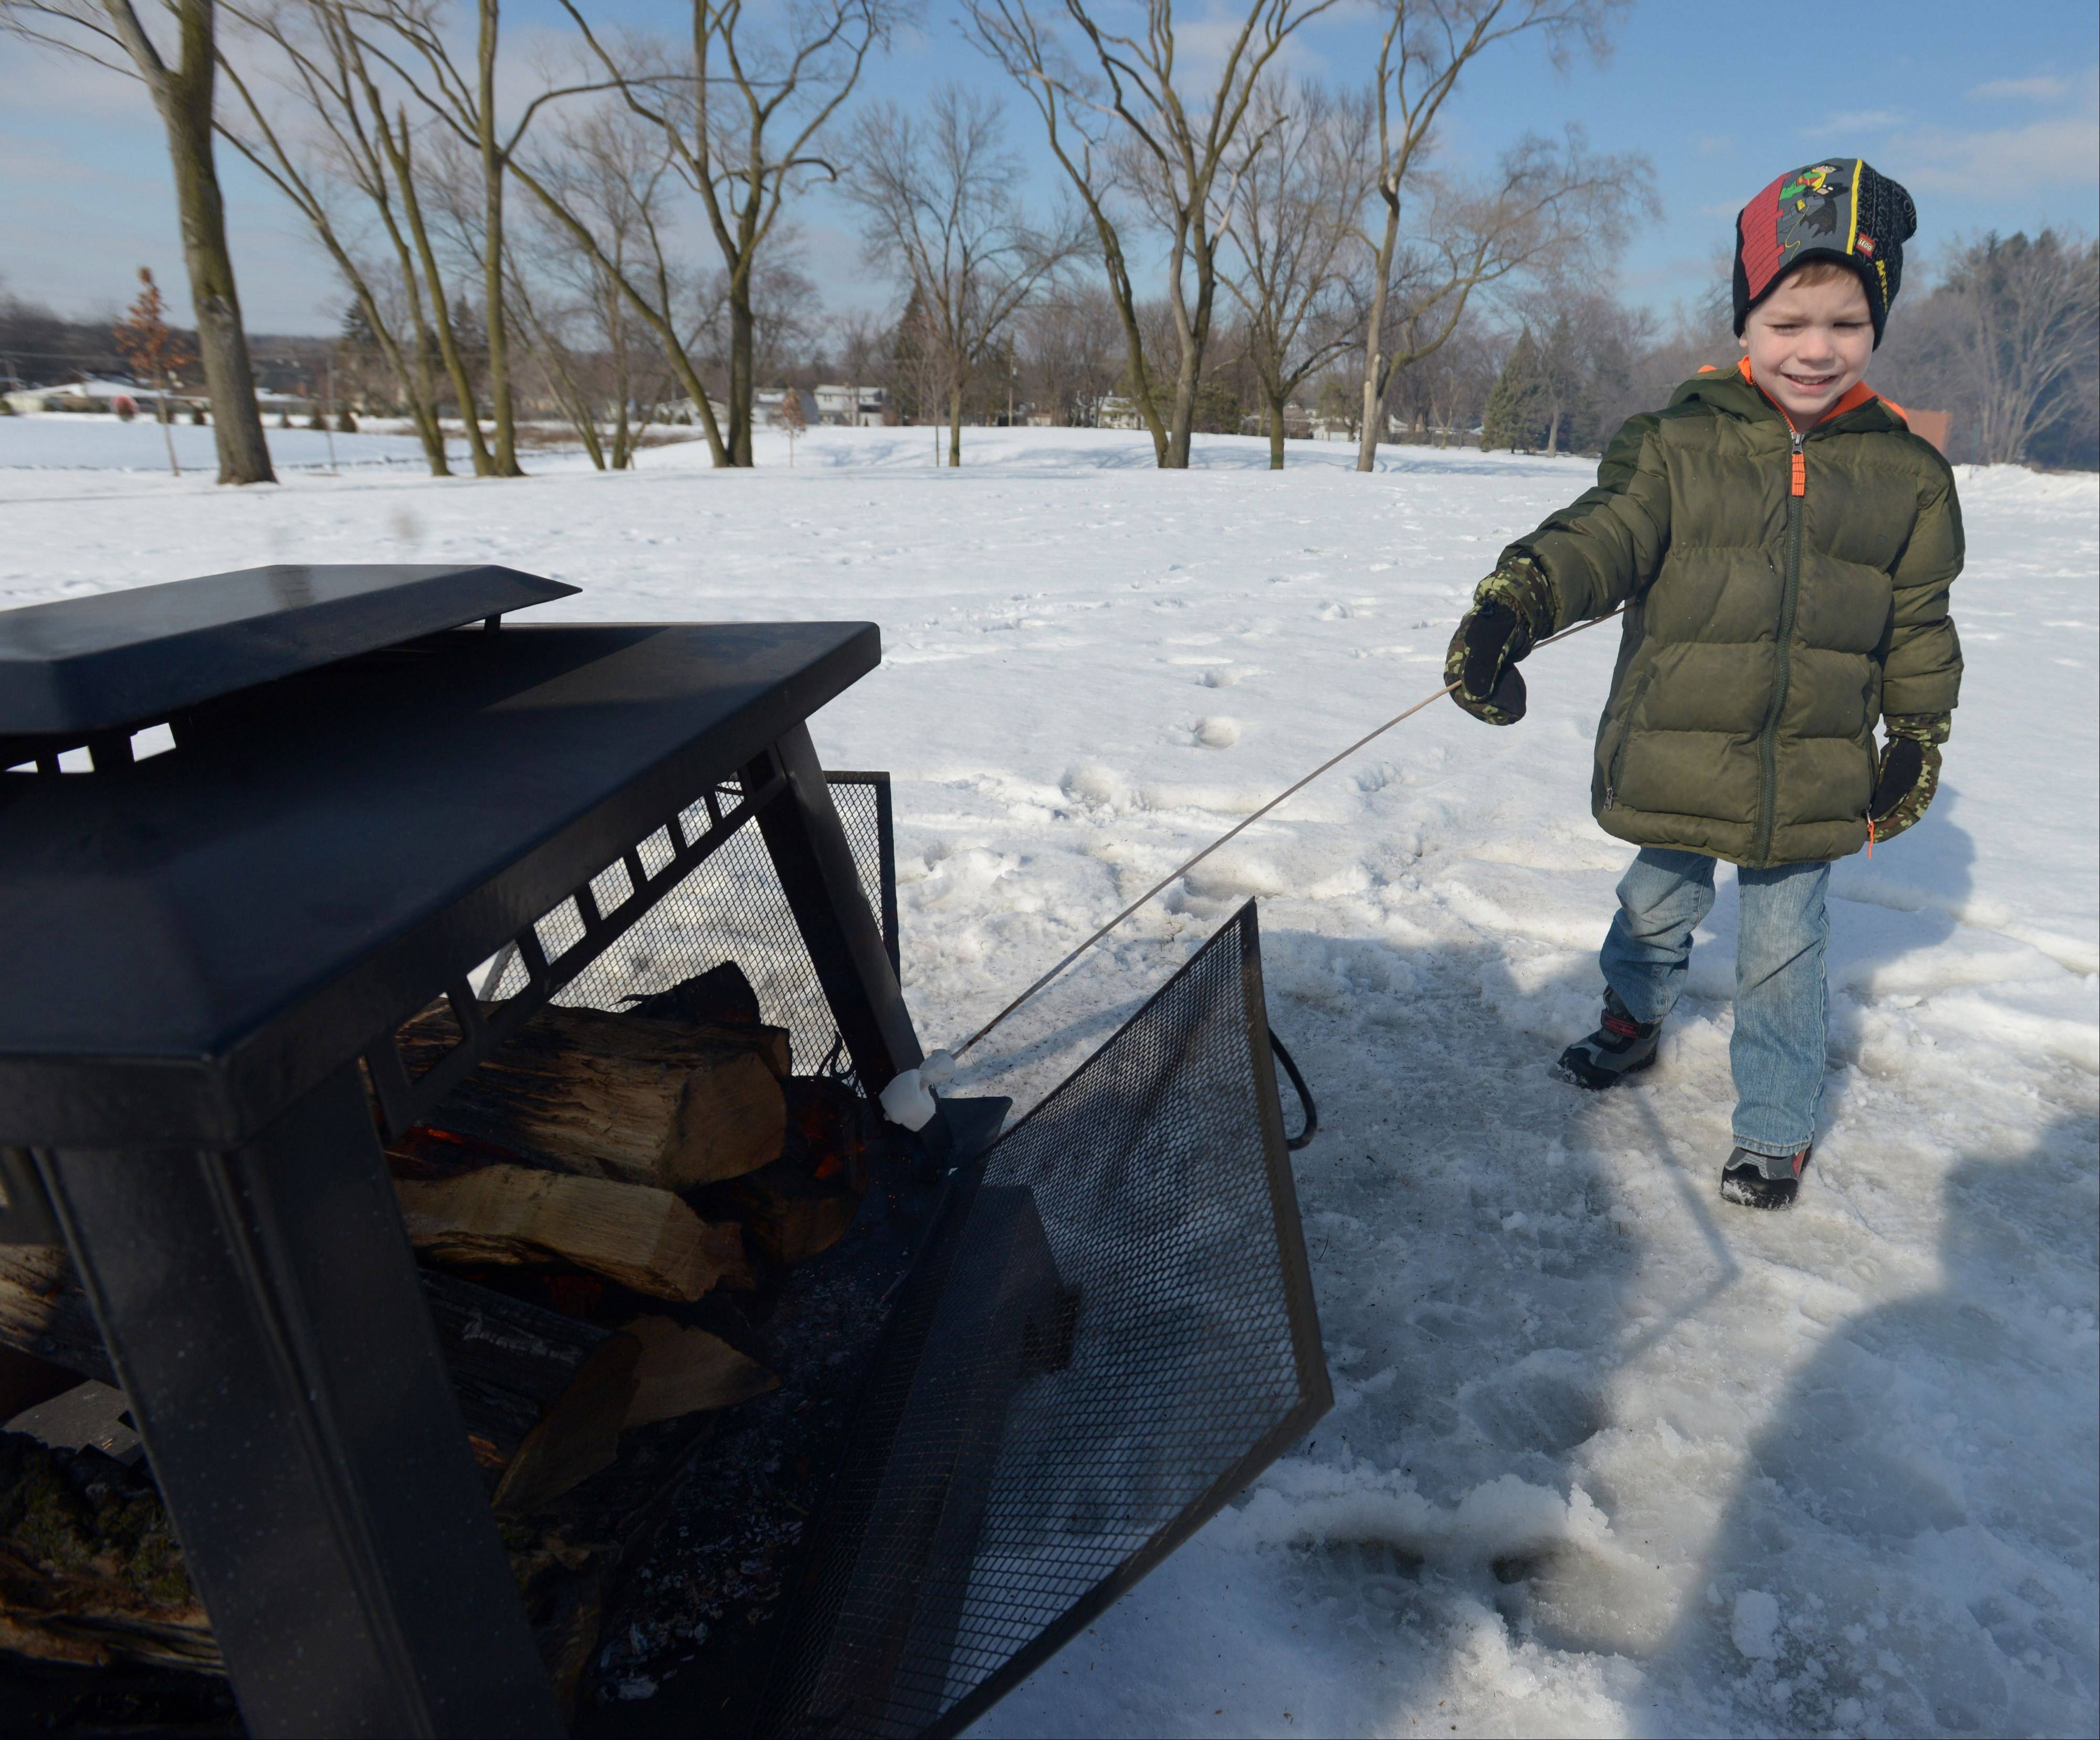 Joshua Push, 4, of Glen Ellyn, roasts a marshmallow Saturday afternoon at the Lombard Park District's annual Winter Carnival. The carnival featured games, ice carving demonstrations and outdoor train rides for kids.